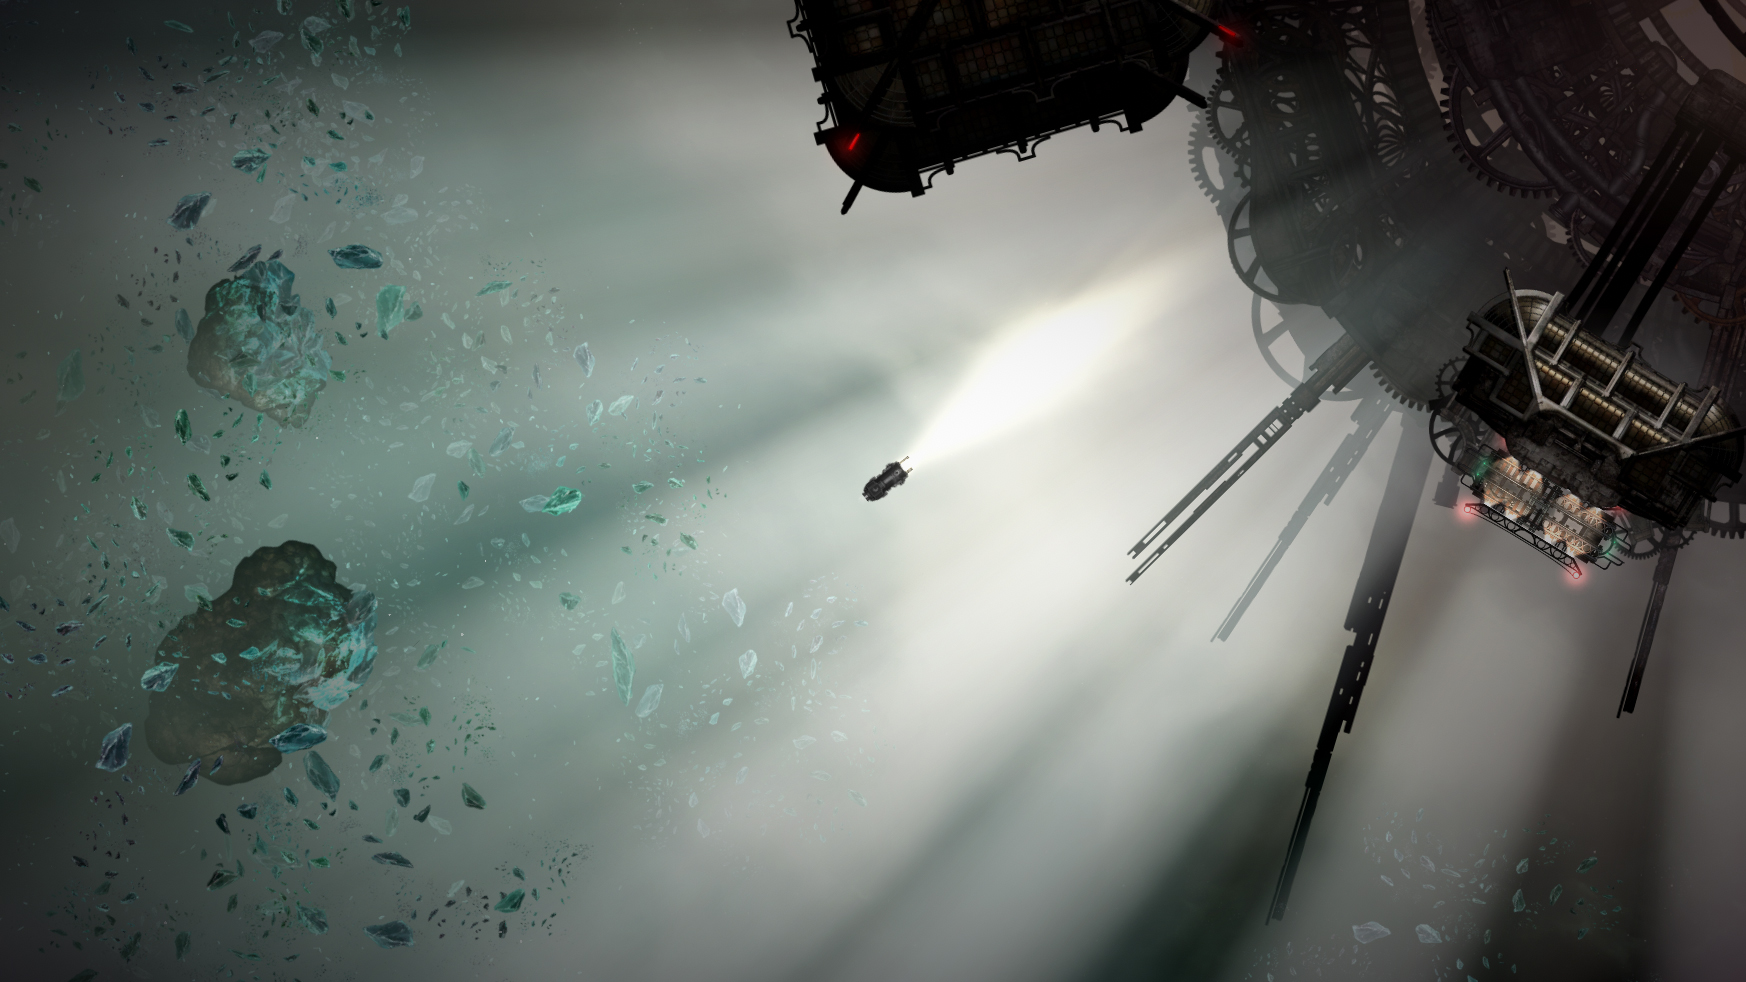 d327514194936 Review  Sunless Skies Plunges Us Evocatively into Outer Space ...